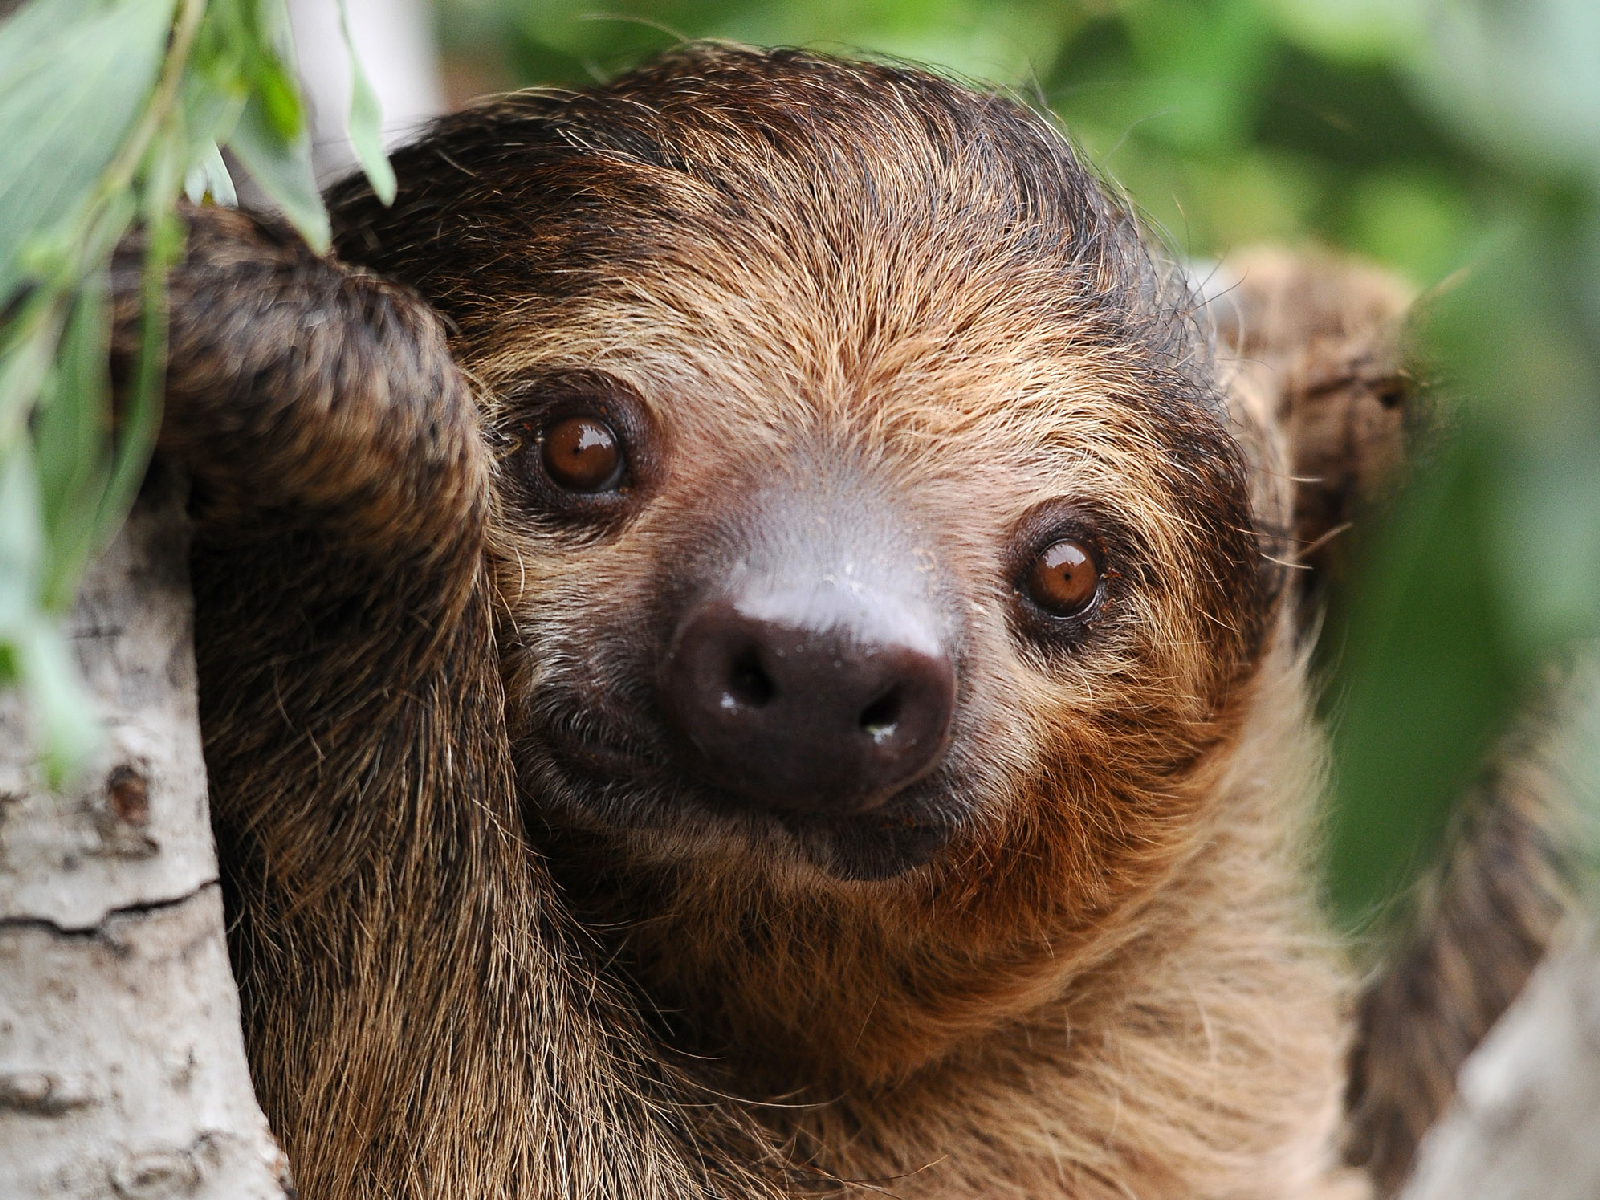 This Sloth Helped Make a Beer for the L.A. Zoo Called 'Slothen Brau'